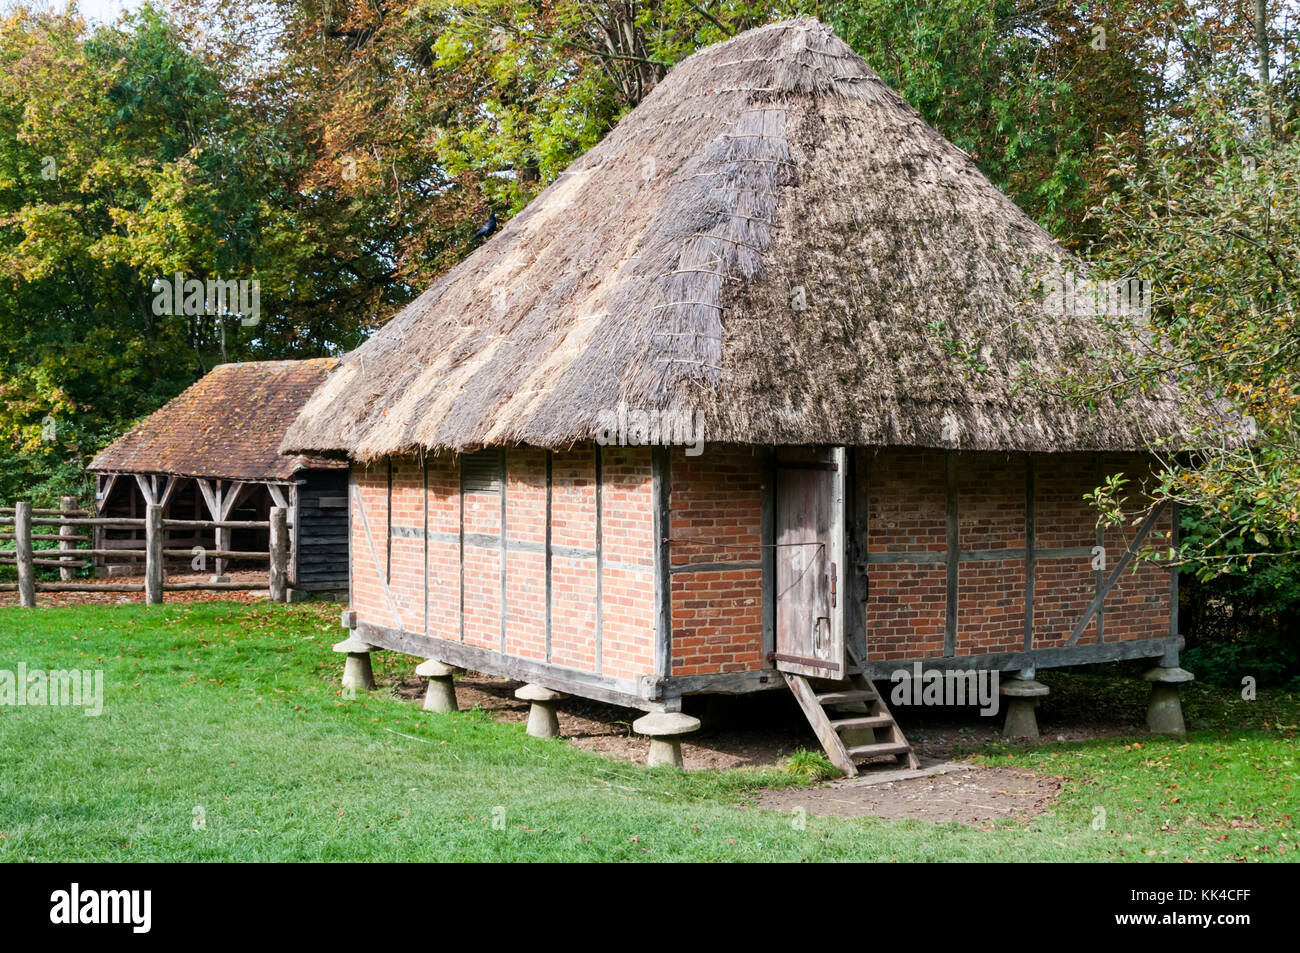 An 18th century granary from Littlehampton at the Weald and Downland Open Air Museum, Singleton, West Sussex. - Stock Image